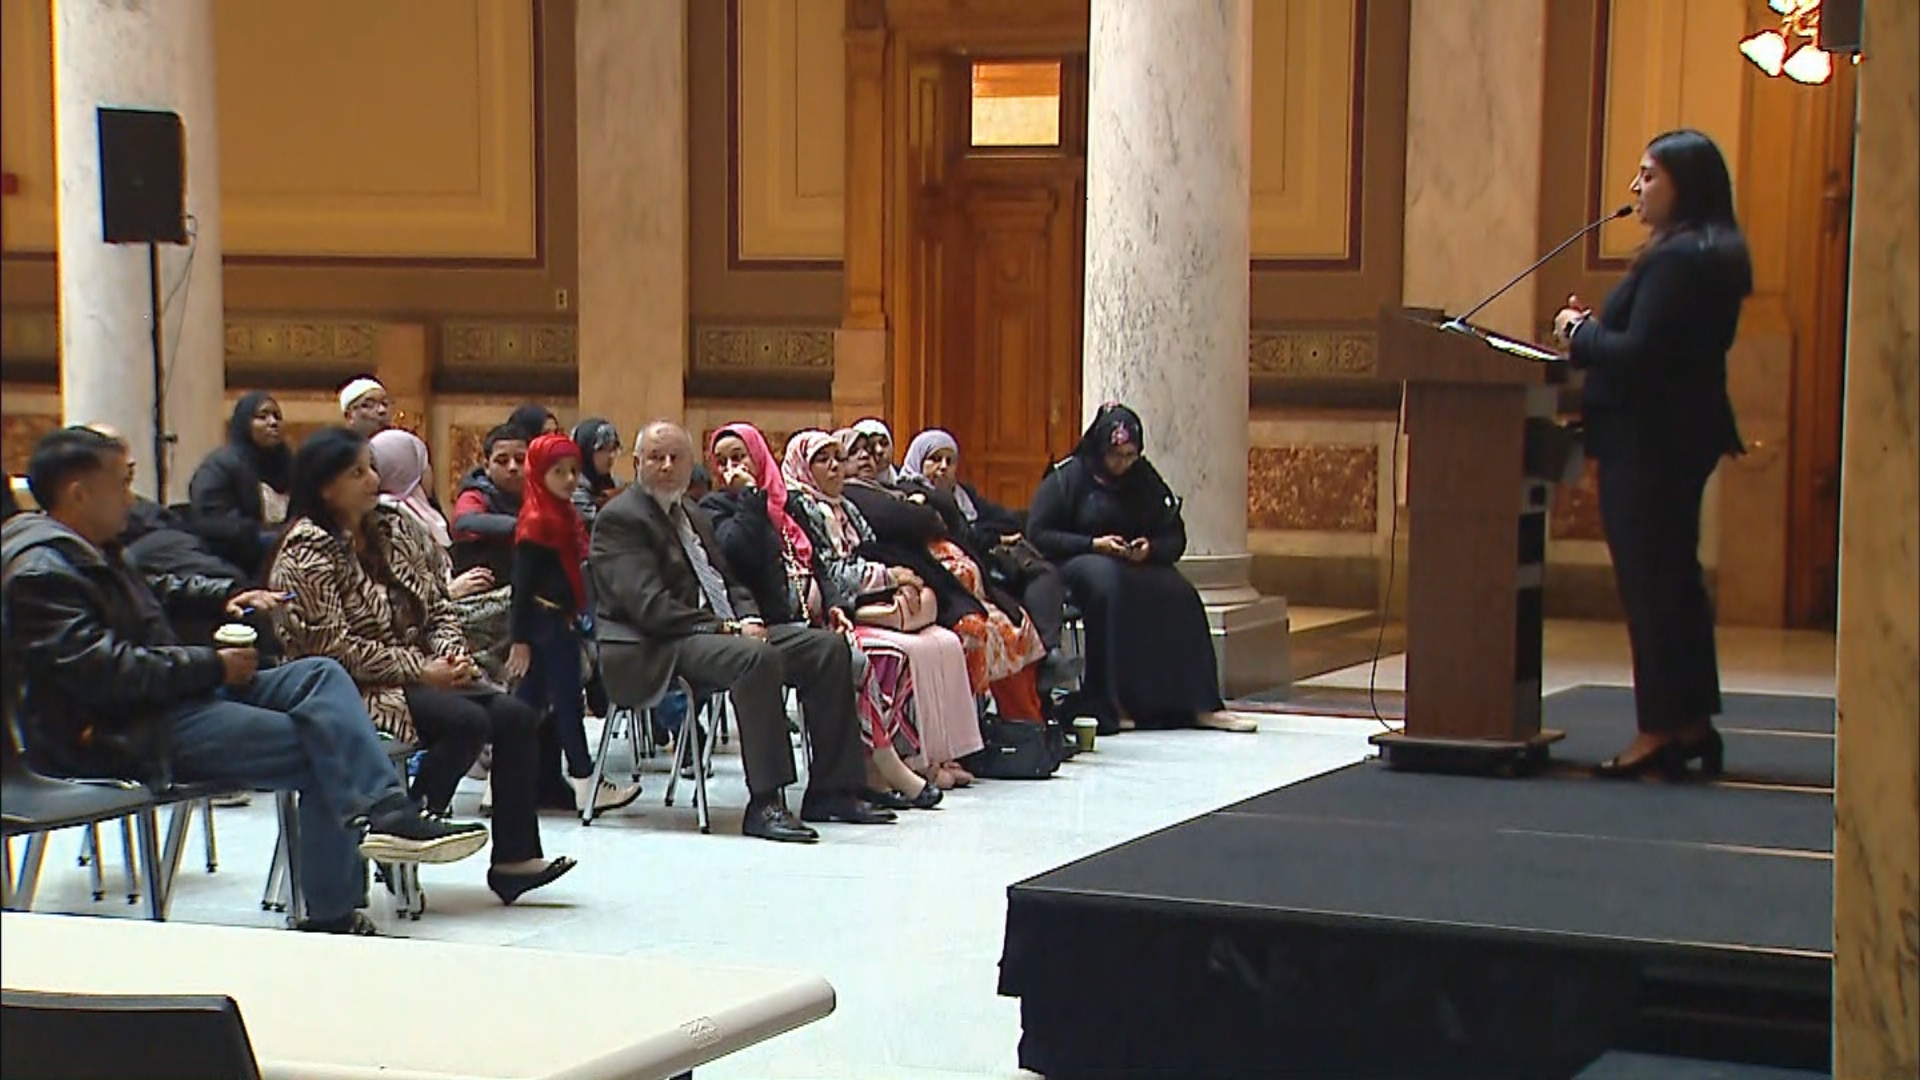 6th annual Muslim Day at Indiana Statehouse